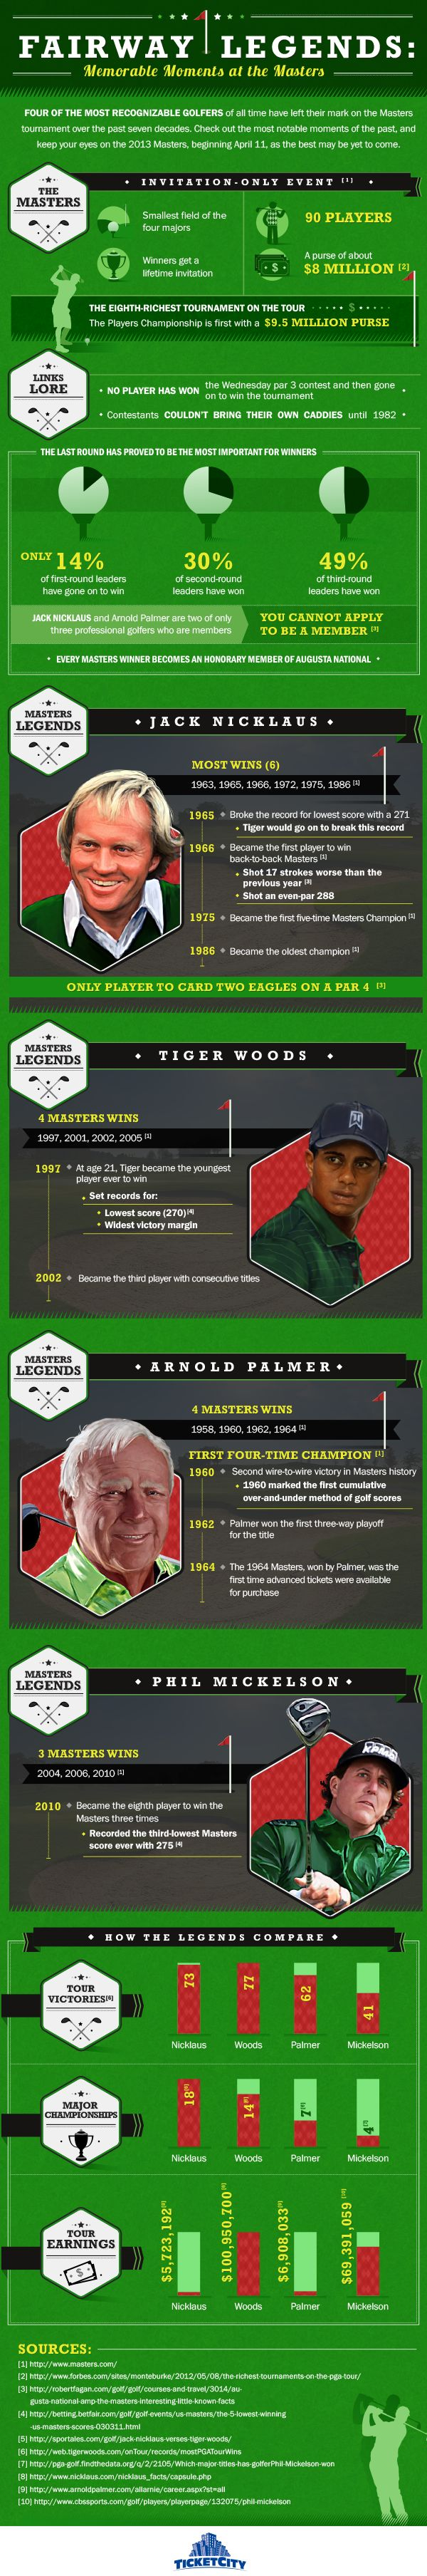 Memorable Moments at the Masters @ Pinfographics